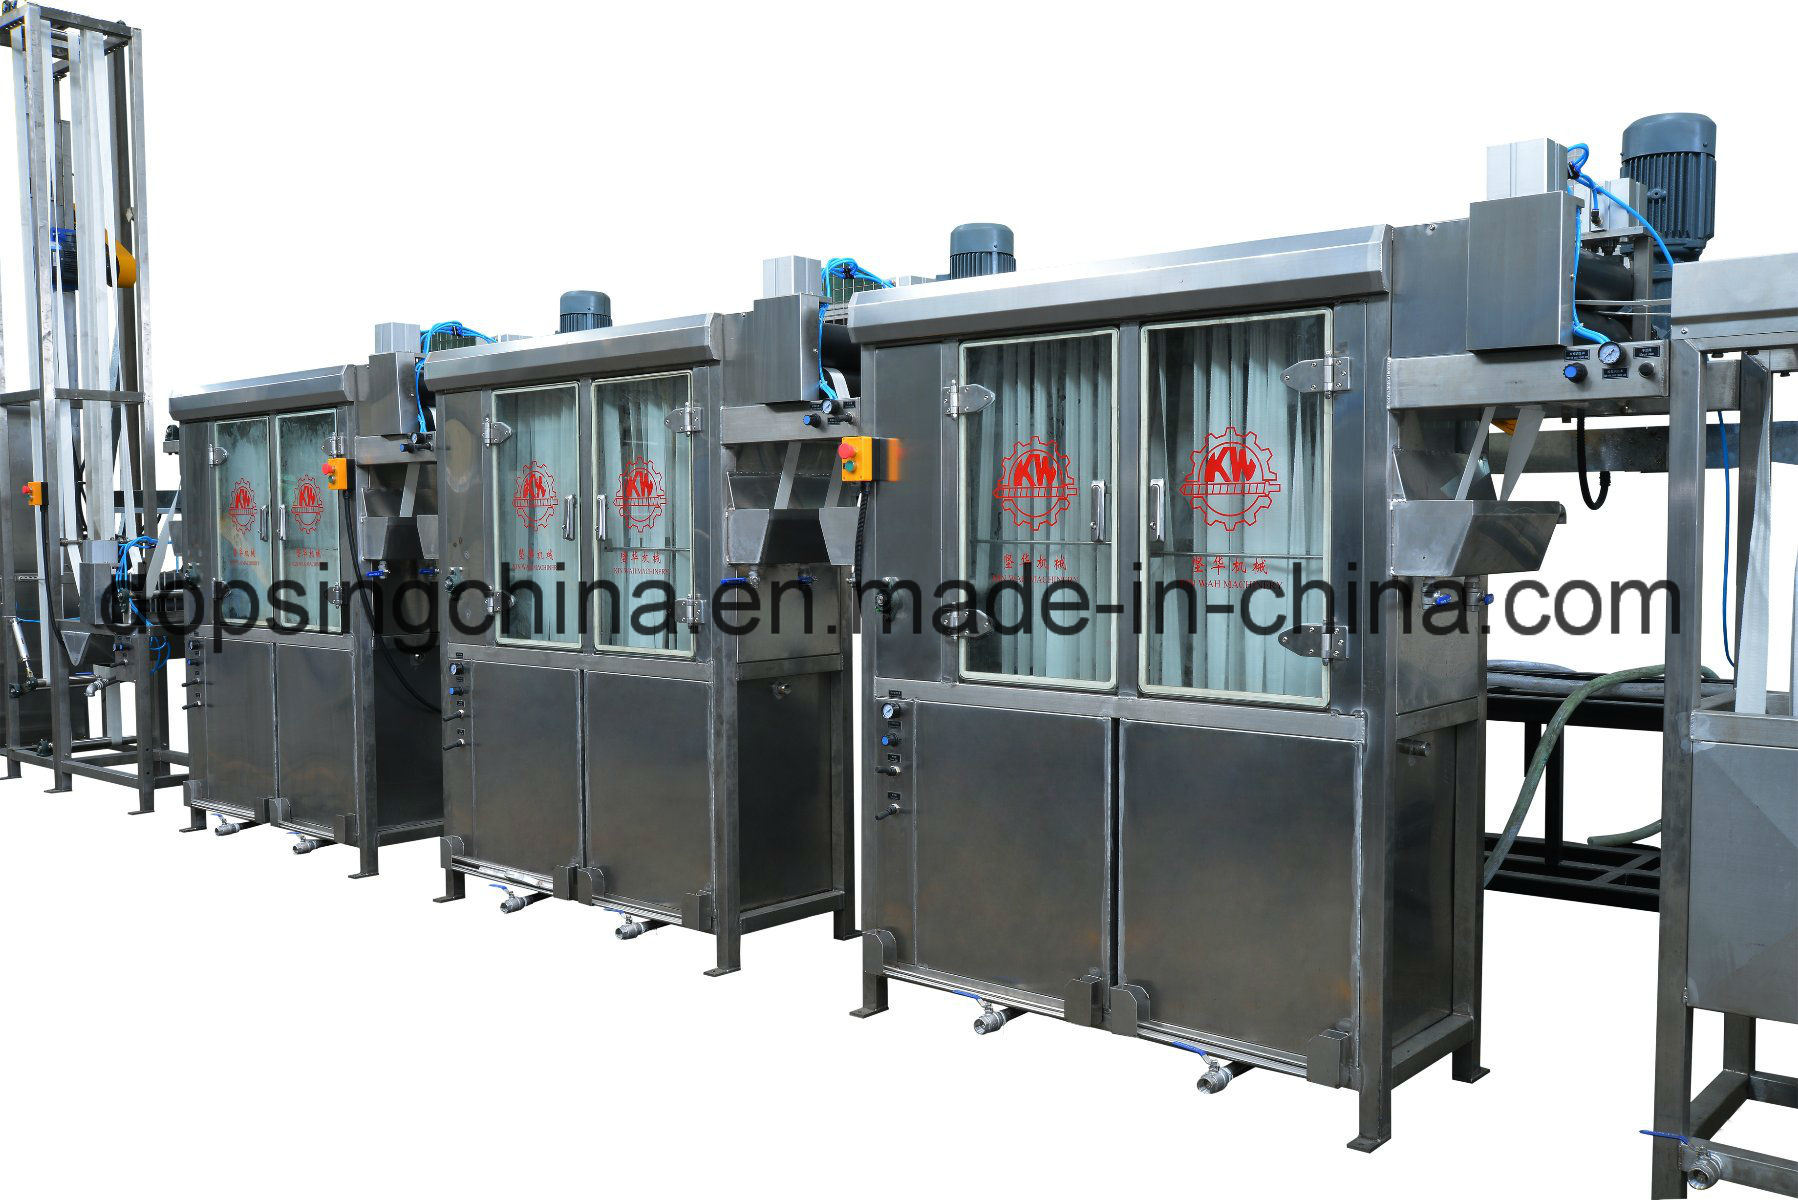 Wholesale Discount High Temperature Continuous Dyeing And Finishing Machine -